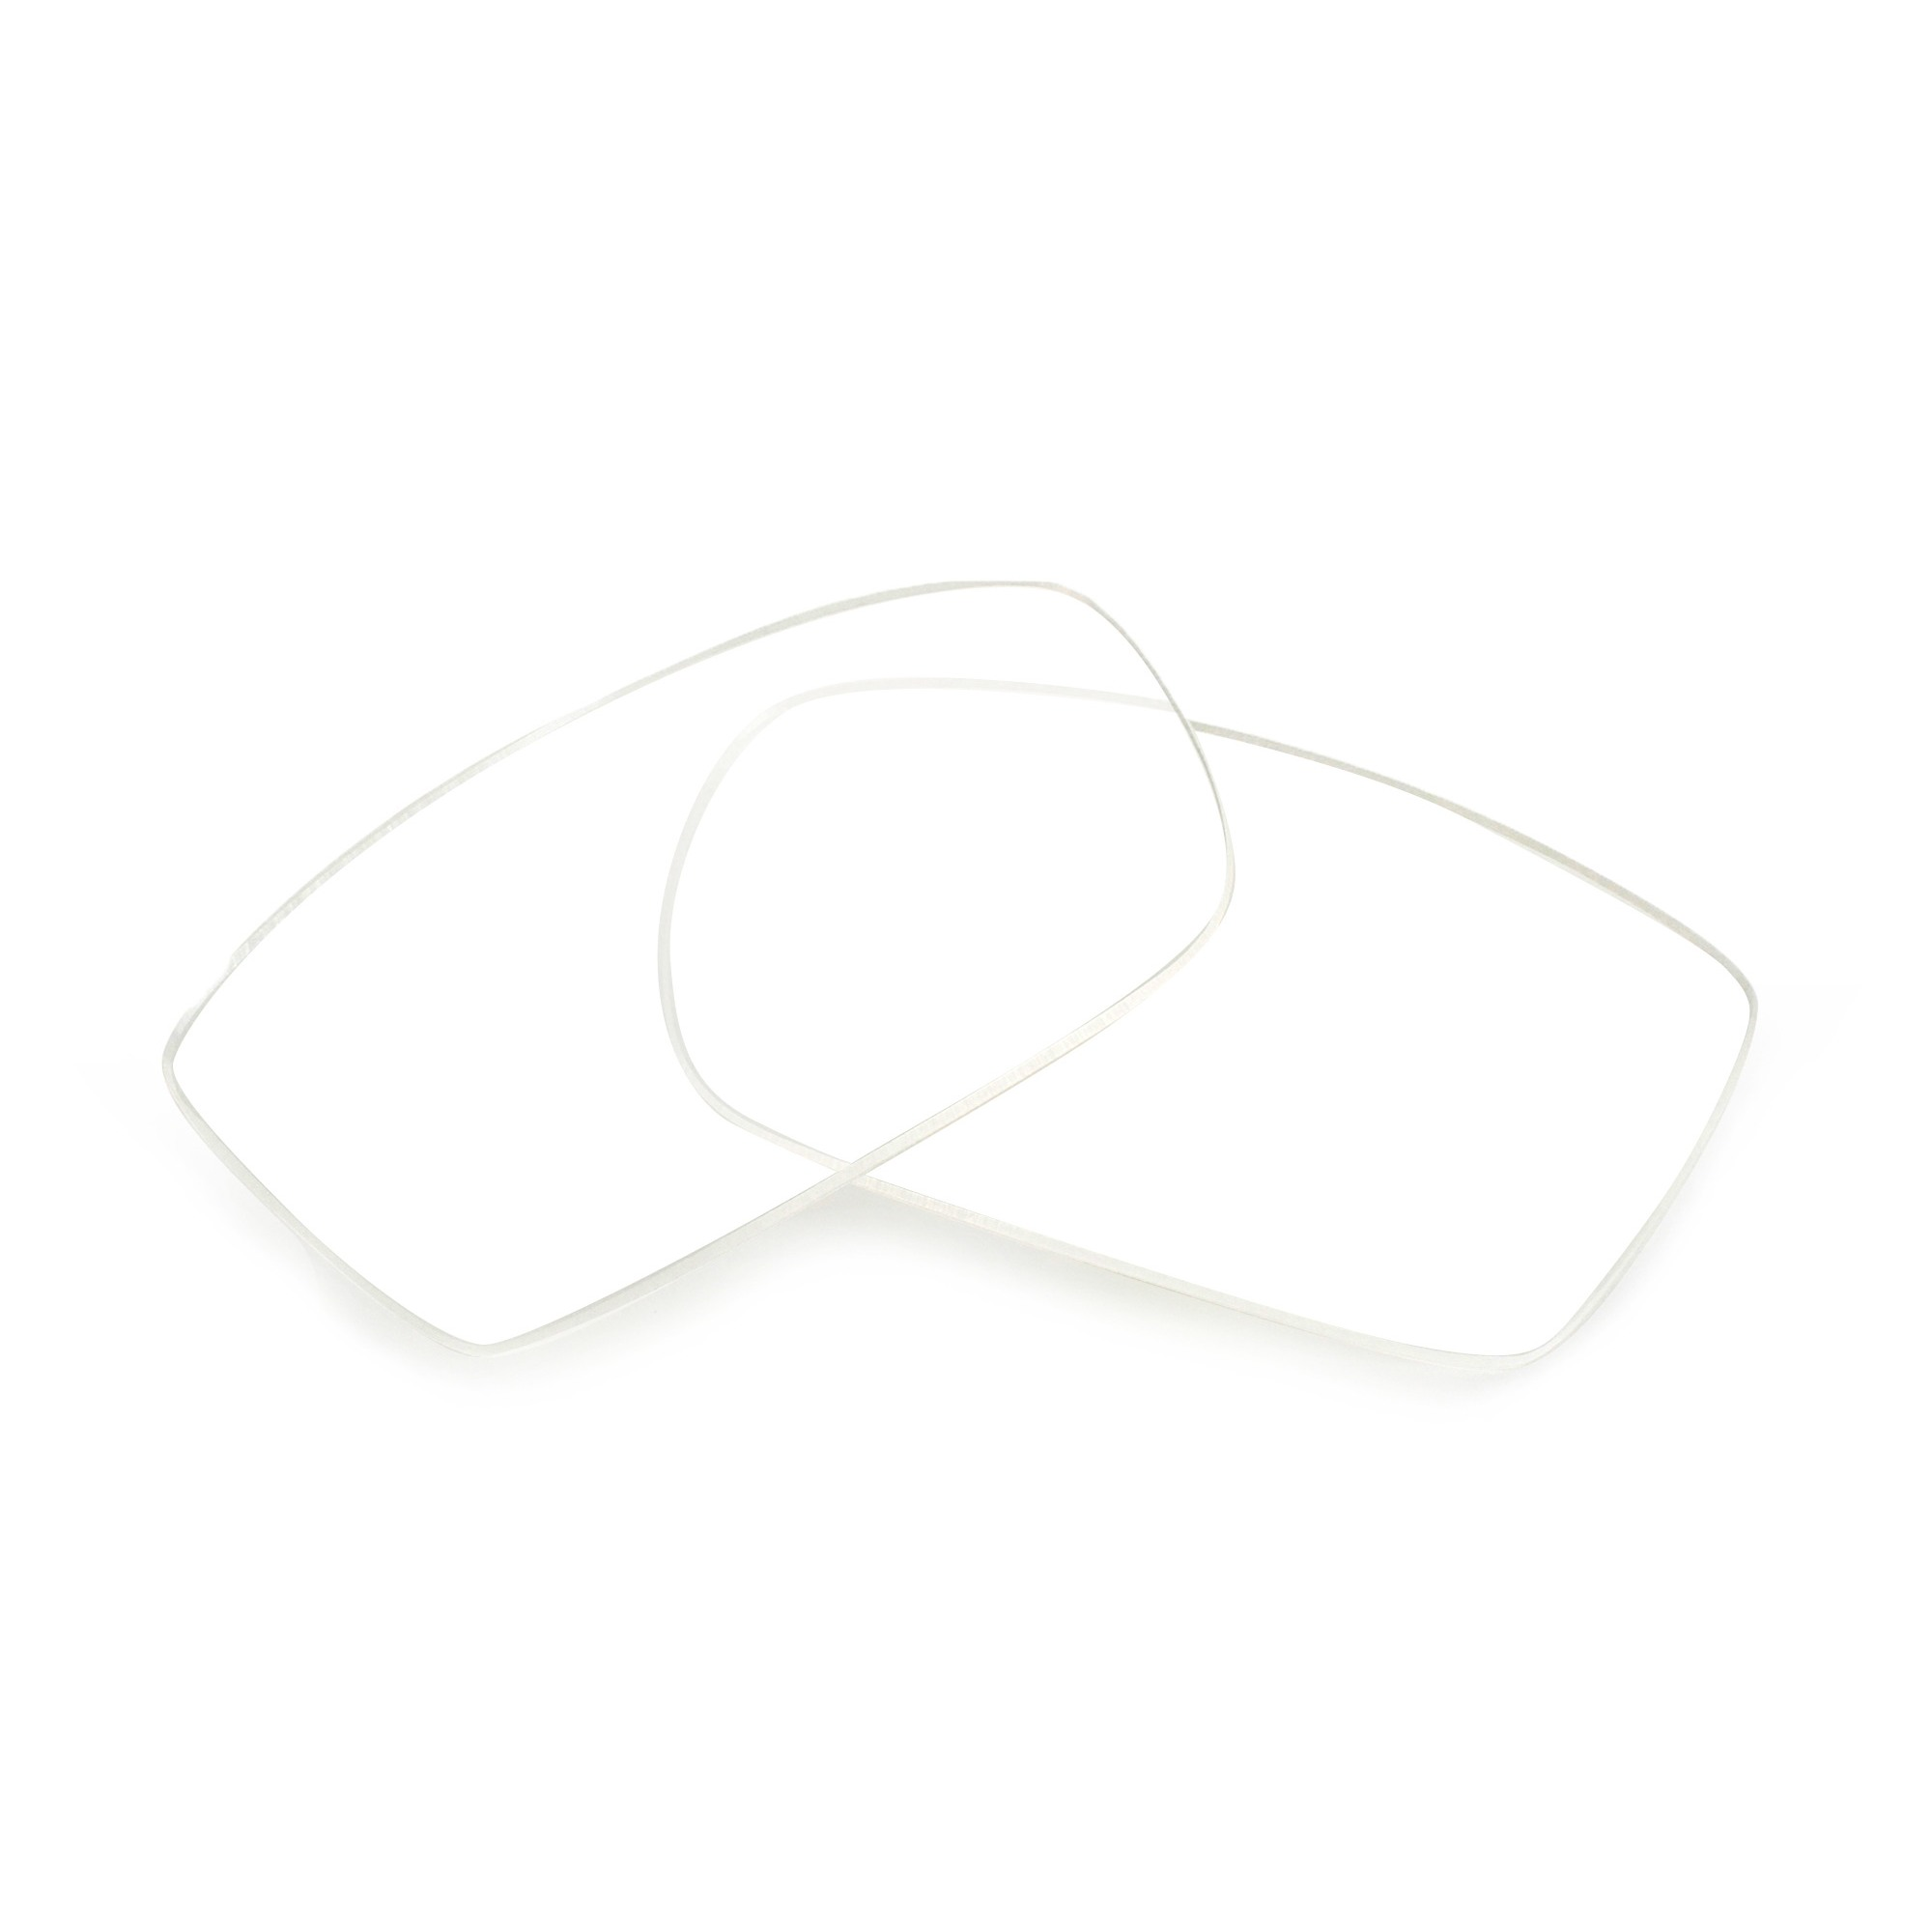 Fuse Lenses Fuse Plus Replacement Lenses for Arnette Fire Drill AN4143